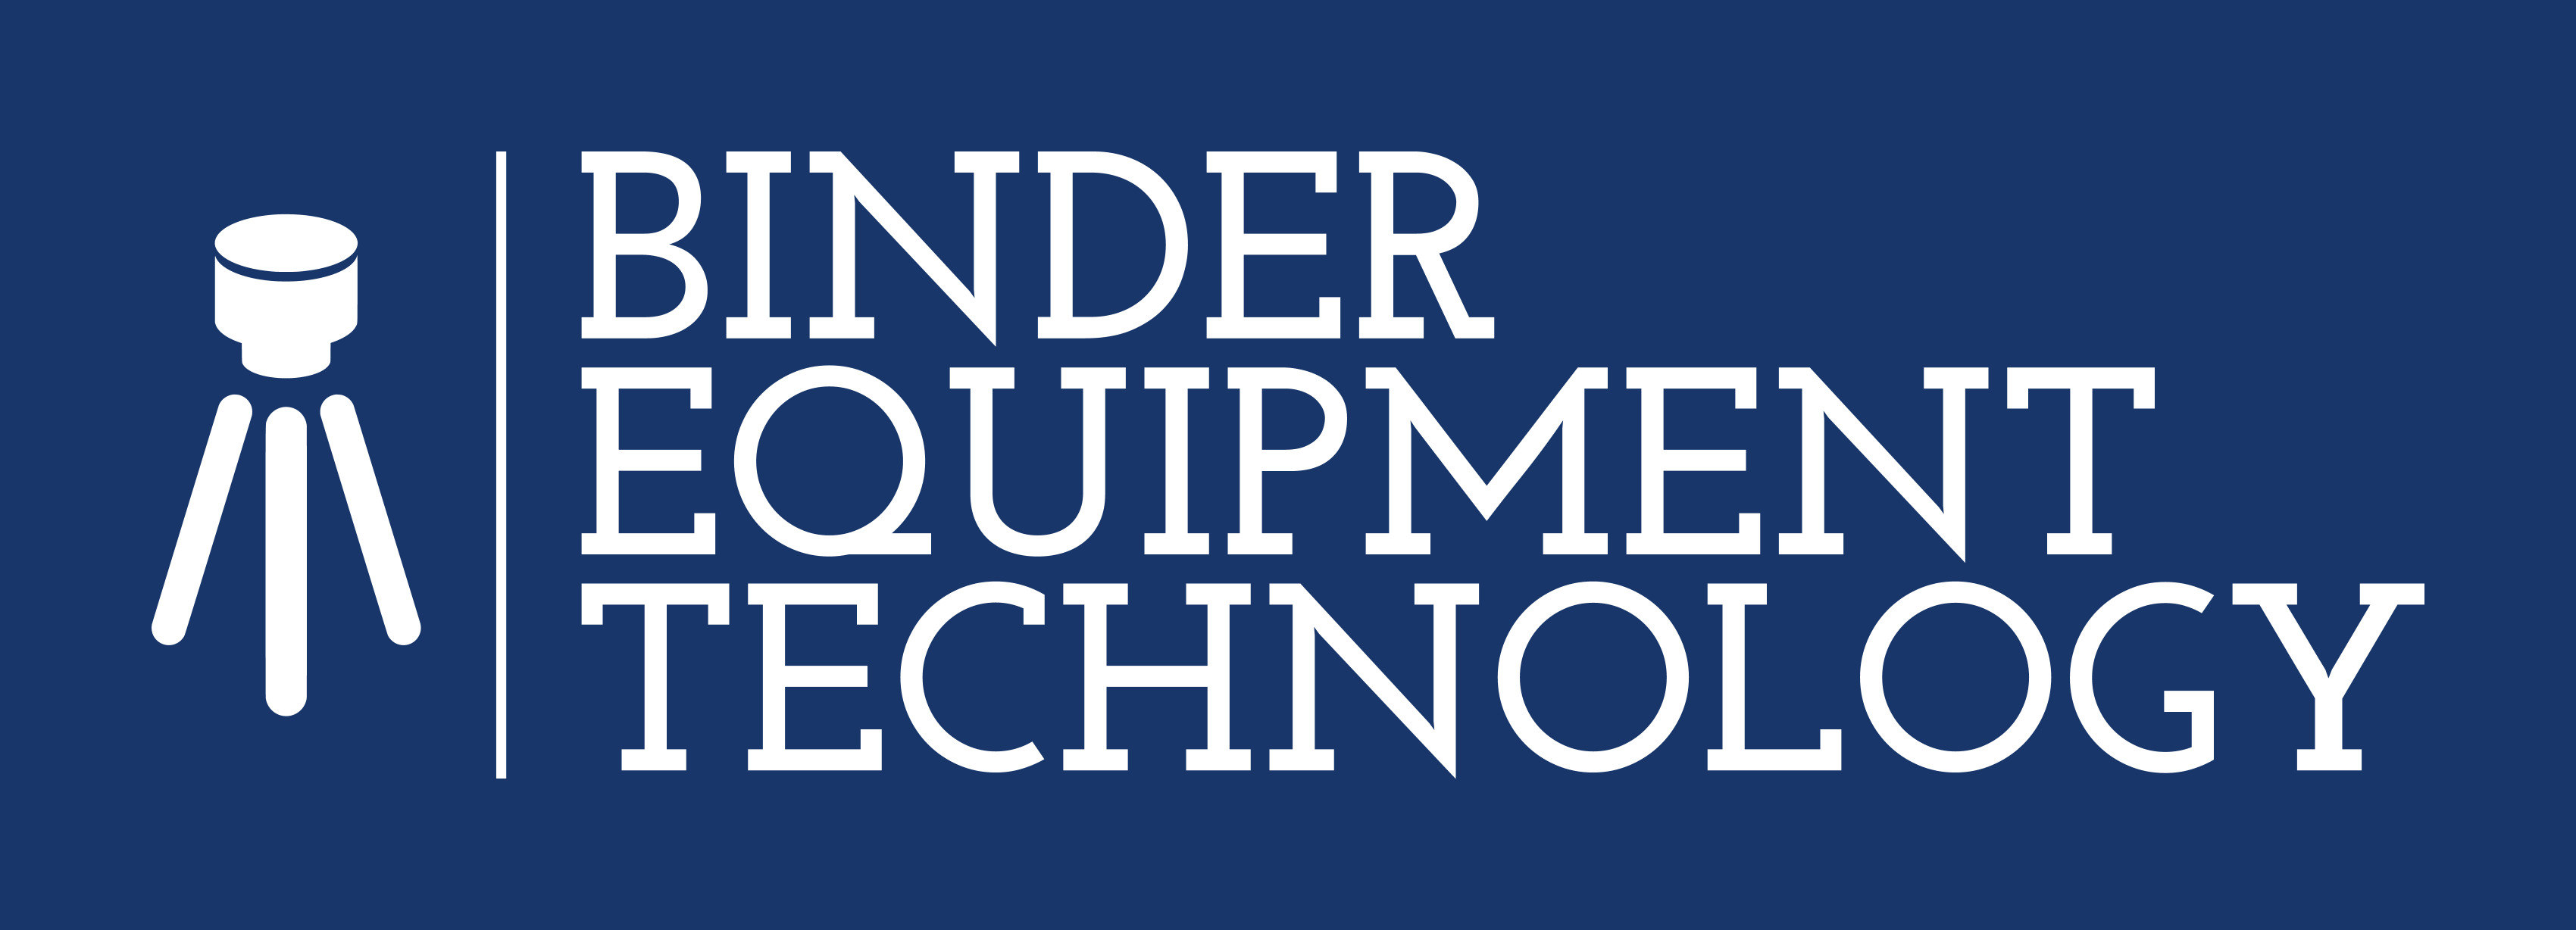 Binder Equipment